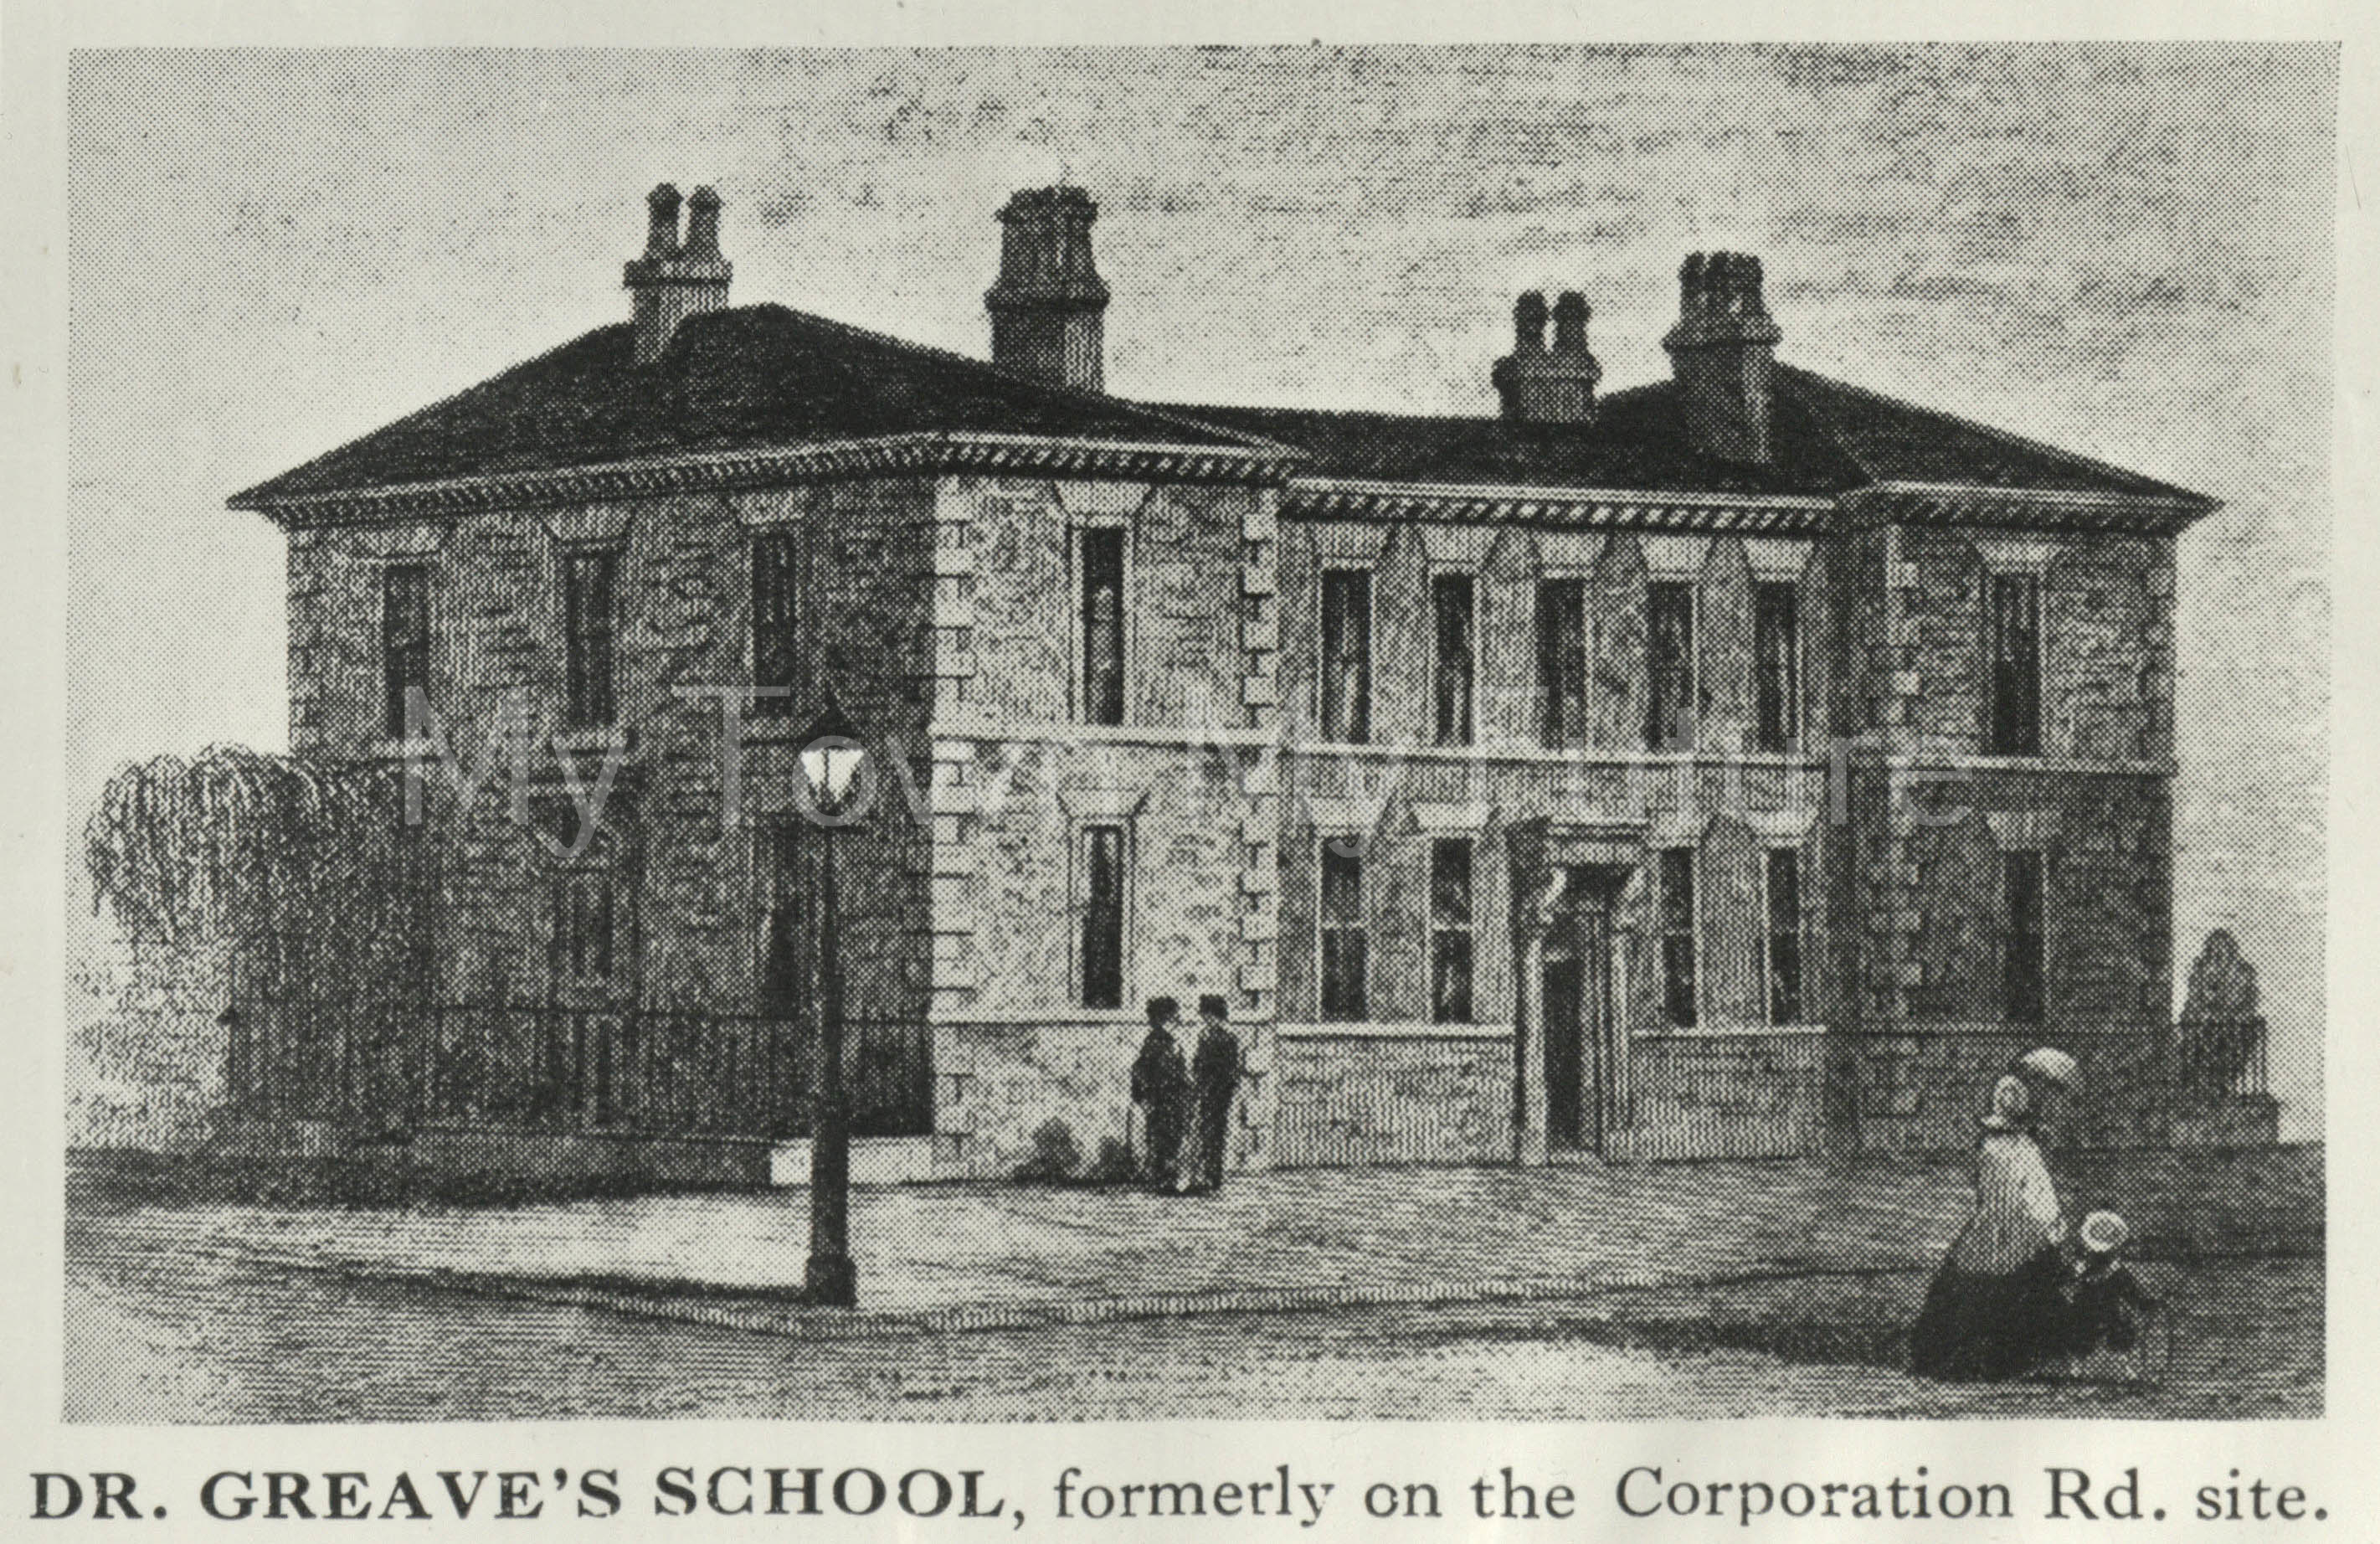 Dr Greave's School